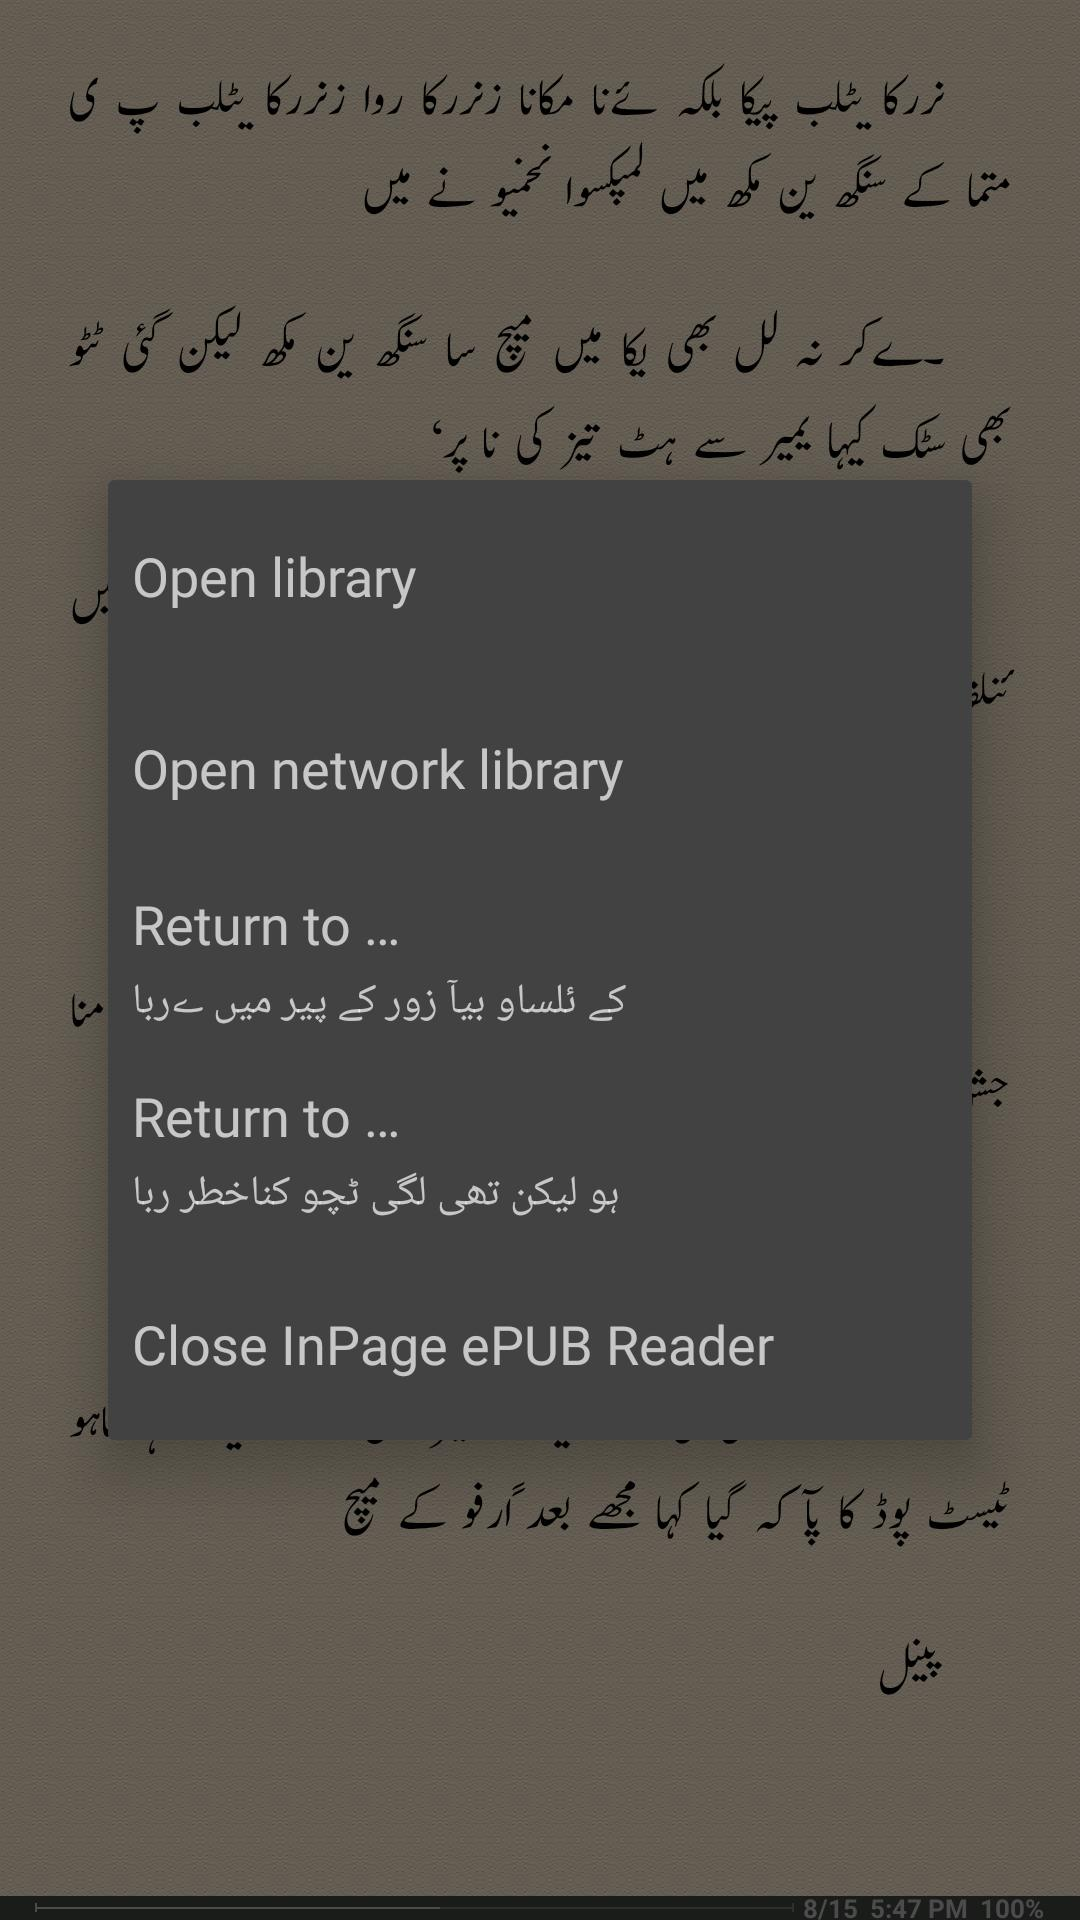 InPage ePUB Reader for Android - APK Download